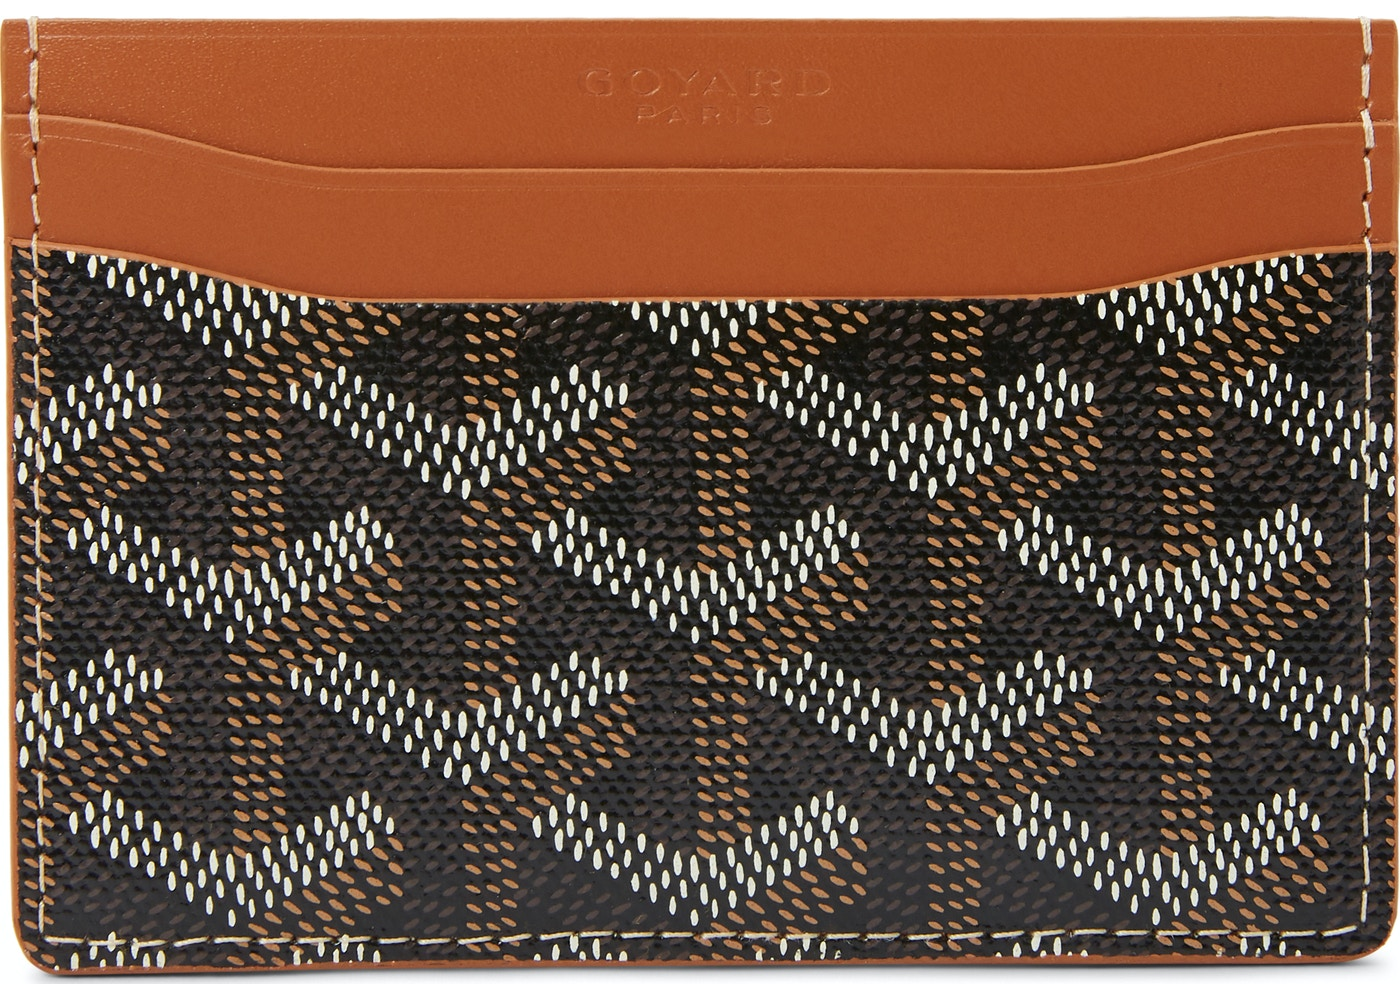 a8bfe4ef7aeeb Goyard Saint Sulpice Card Holder Monogram Chevron Multicolor Brown.  Monogram Chevron Multicolor Brown